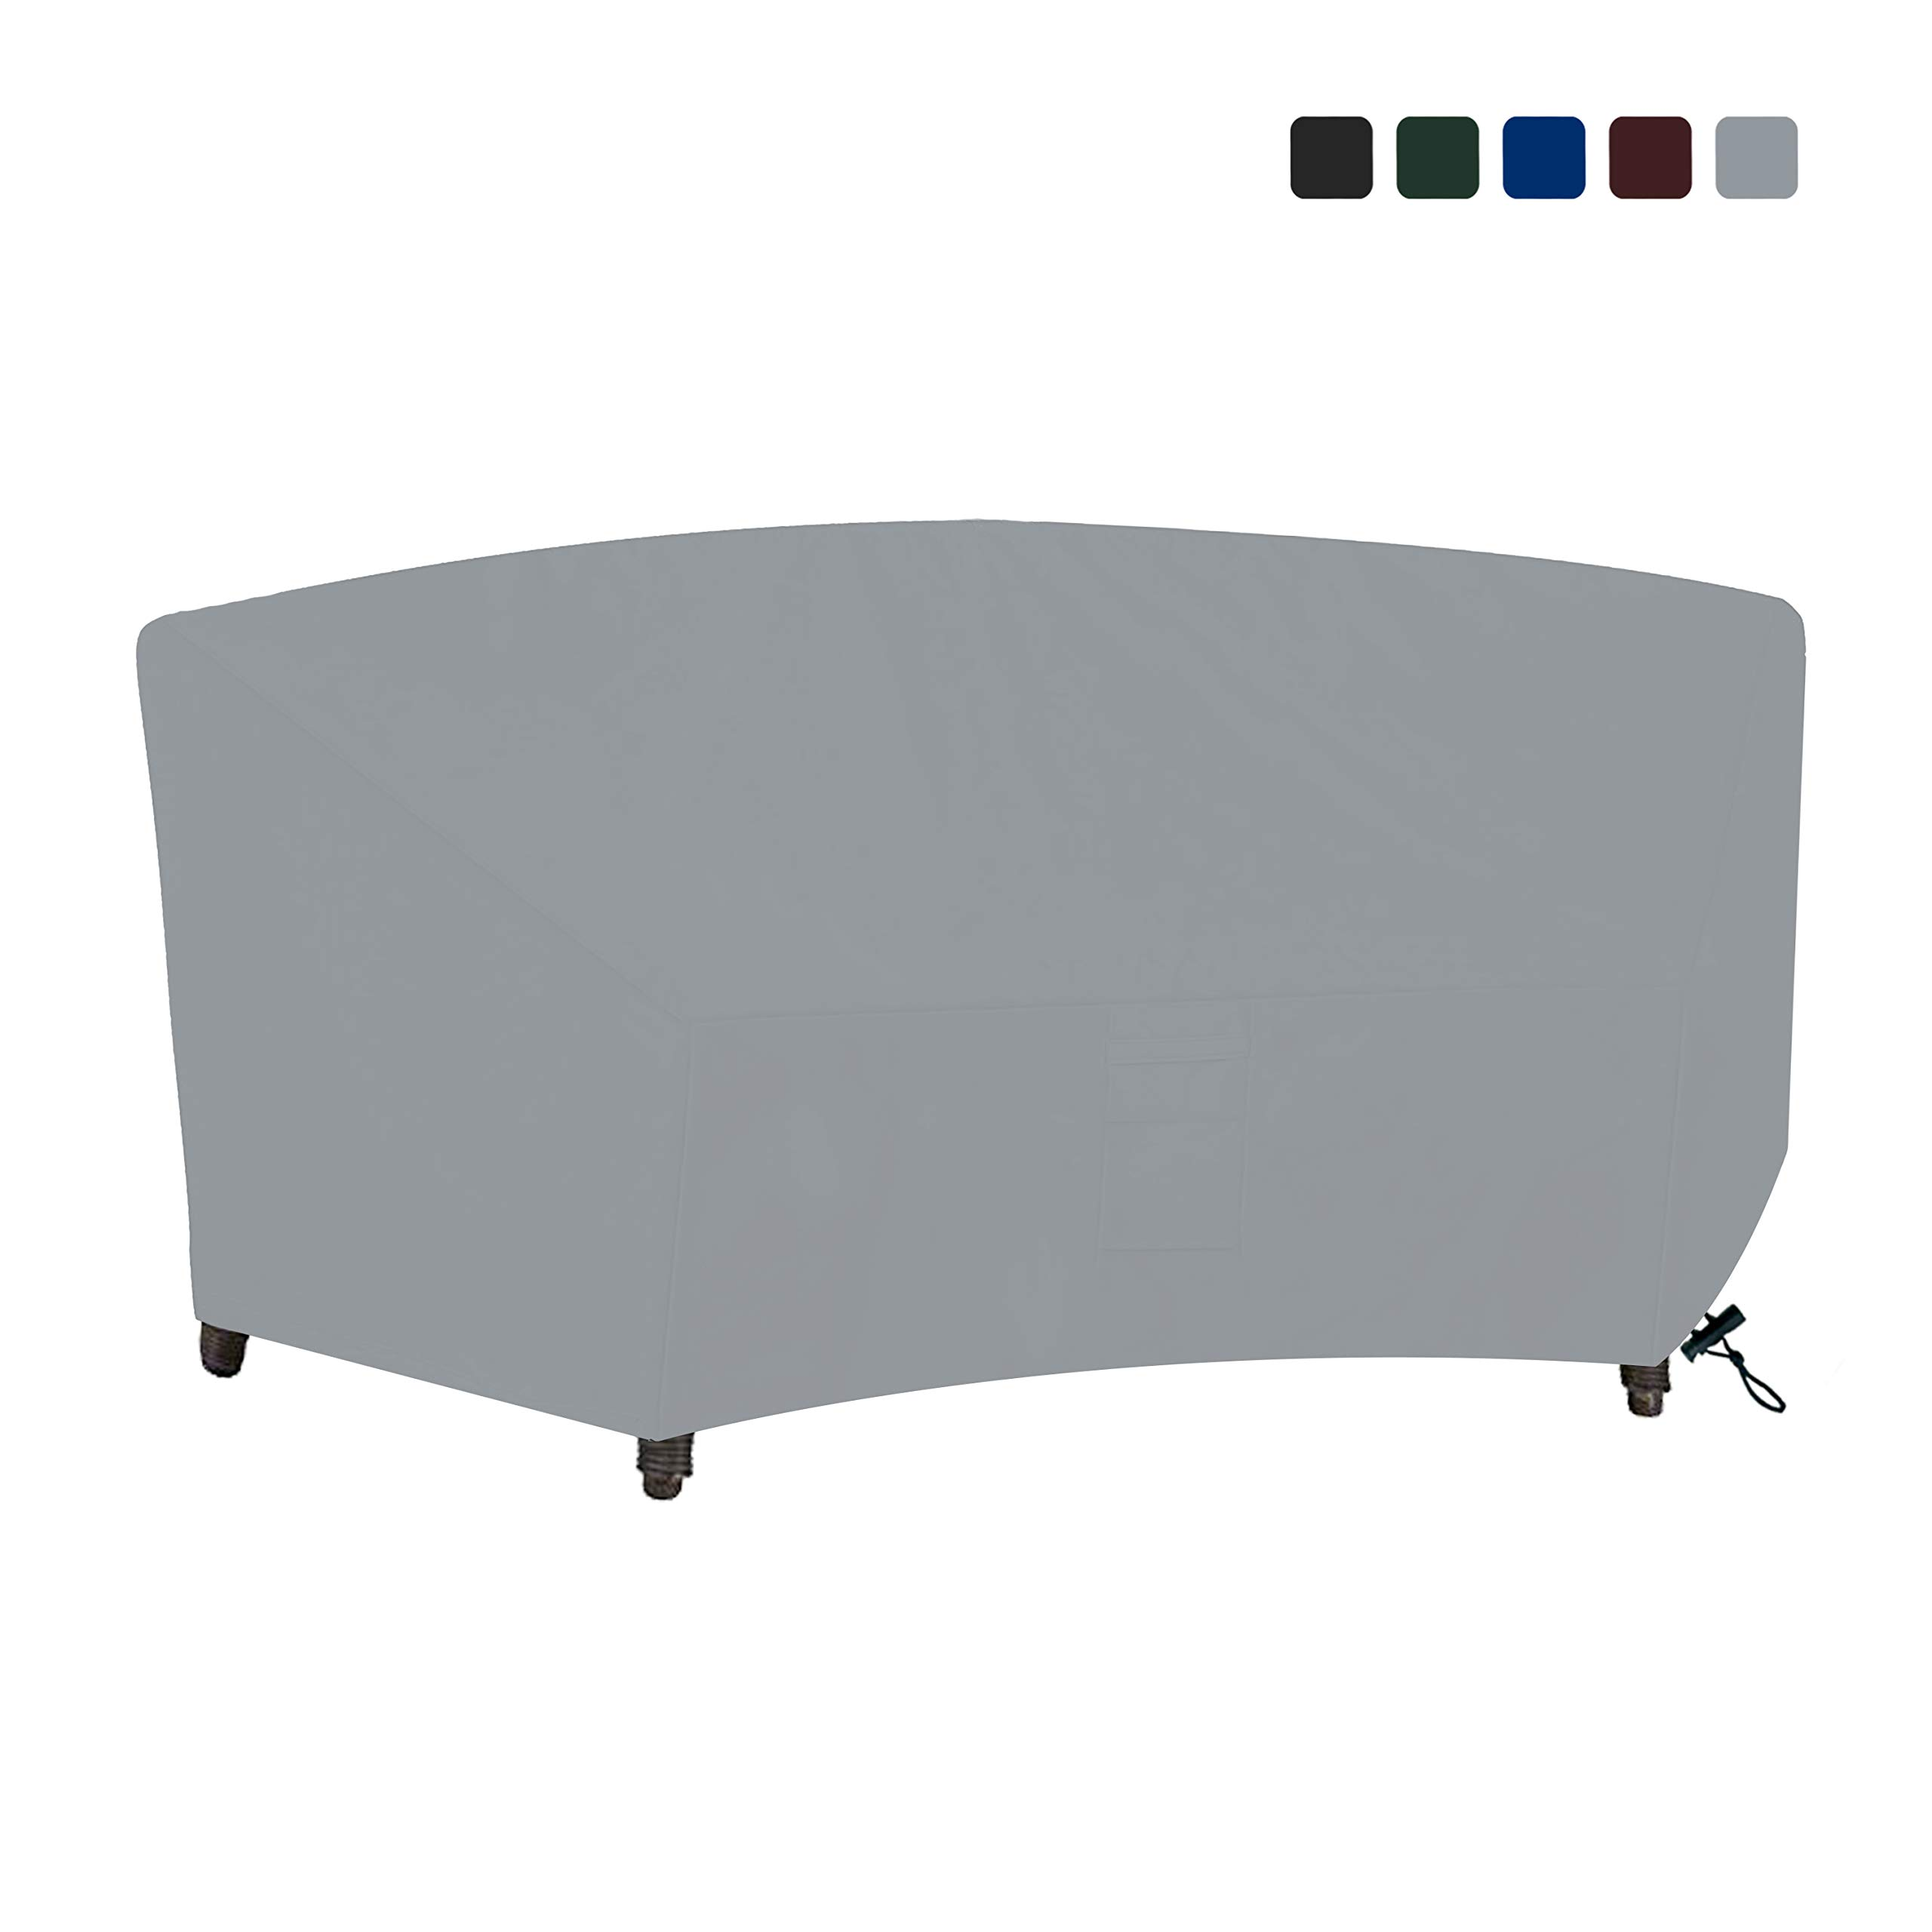 COVERS & ALL Curved Sofa Cover 18 Oz Waterproof - 100% UV & Weather Resistant Customize Outdoor Sofa Cover with Air Pockets and Drawstring with Snug Fit (90W x 34 D x 32 H x 46 FL, Grey)